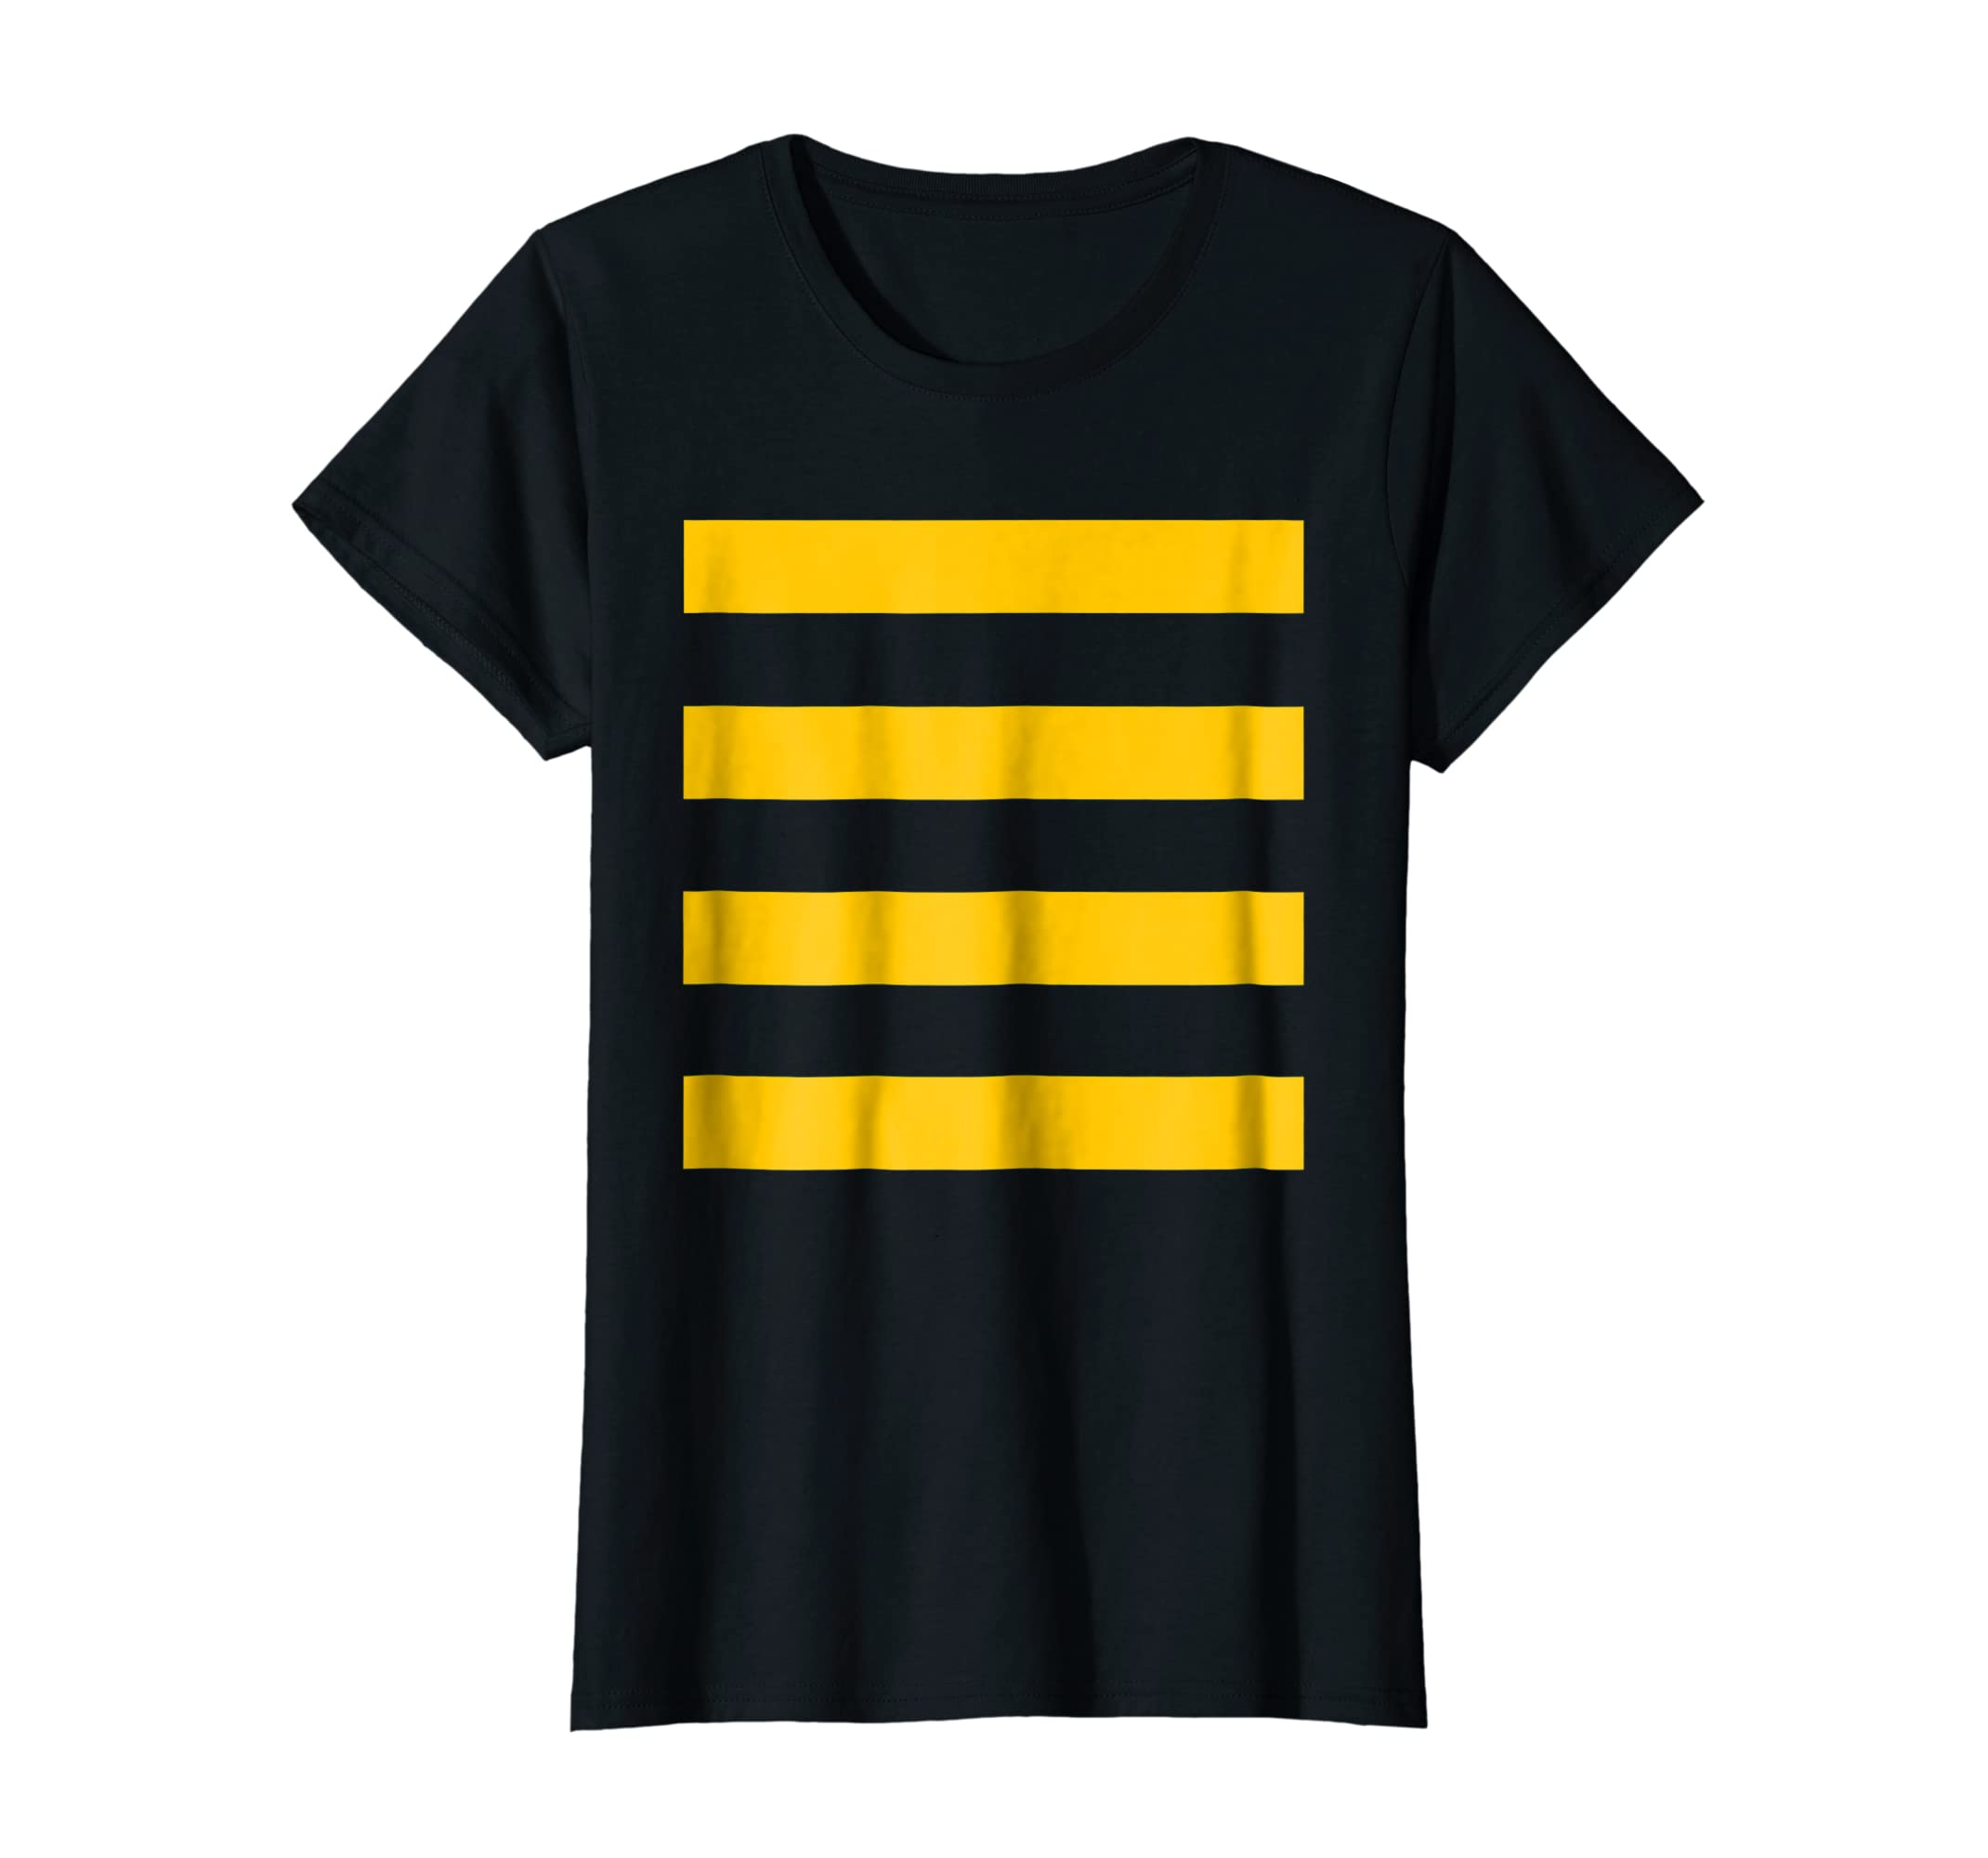 3e201fd137 Amazon.com: Bee Halloween DIY Costume Shirt - Yellow Stripes on Black:  Clothing